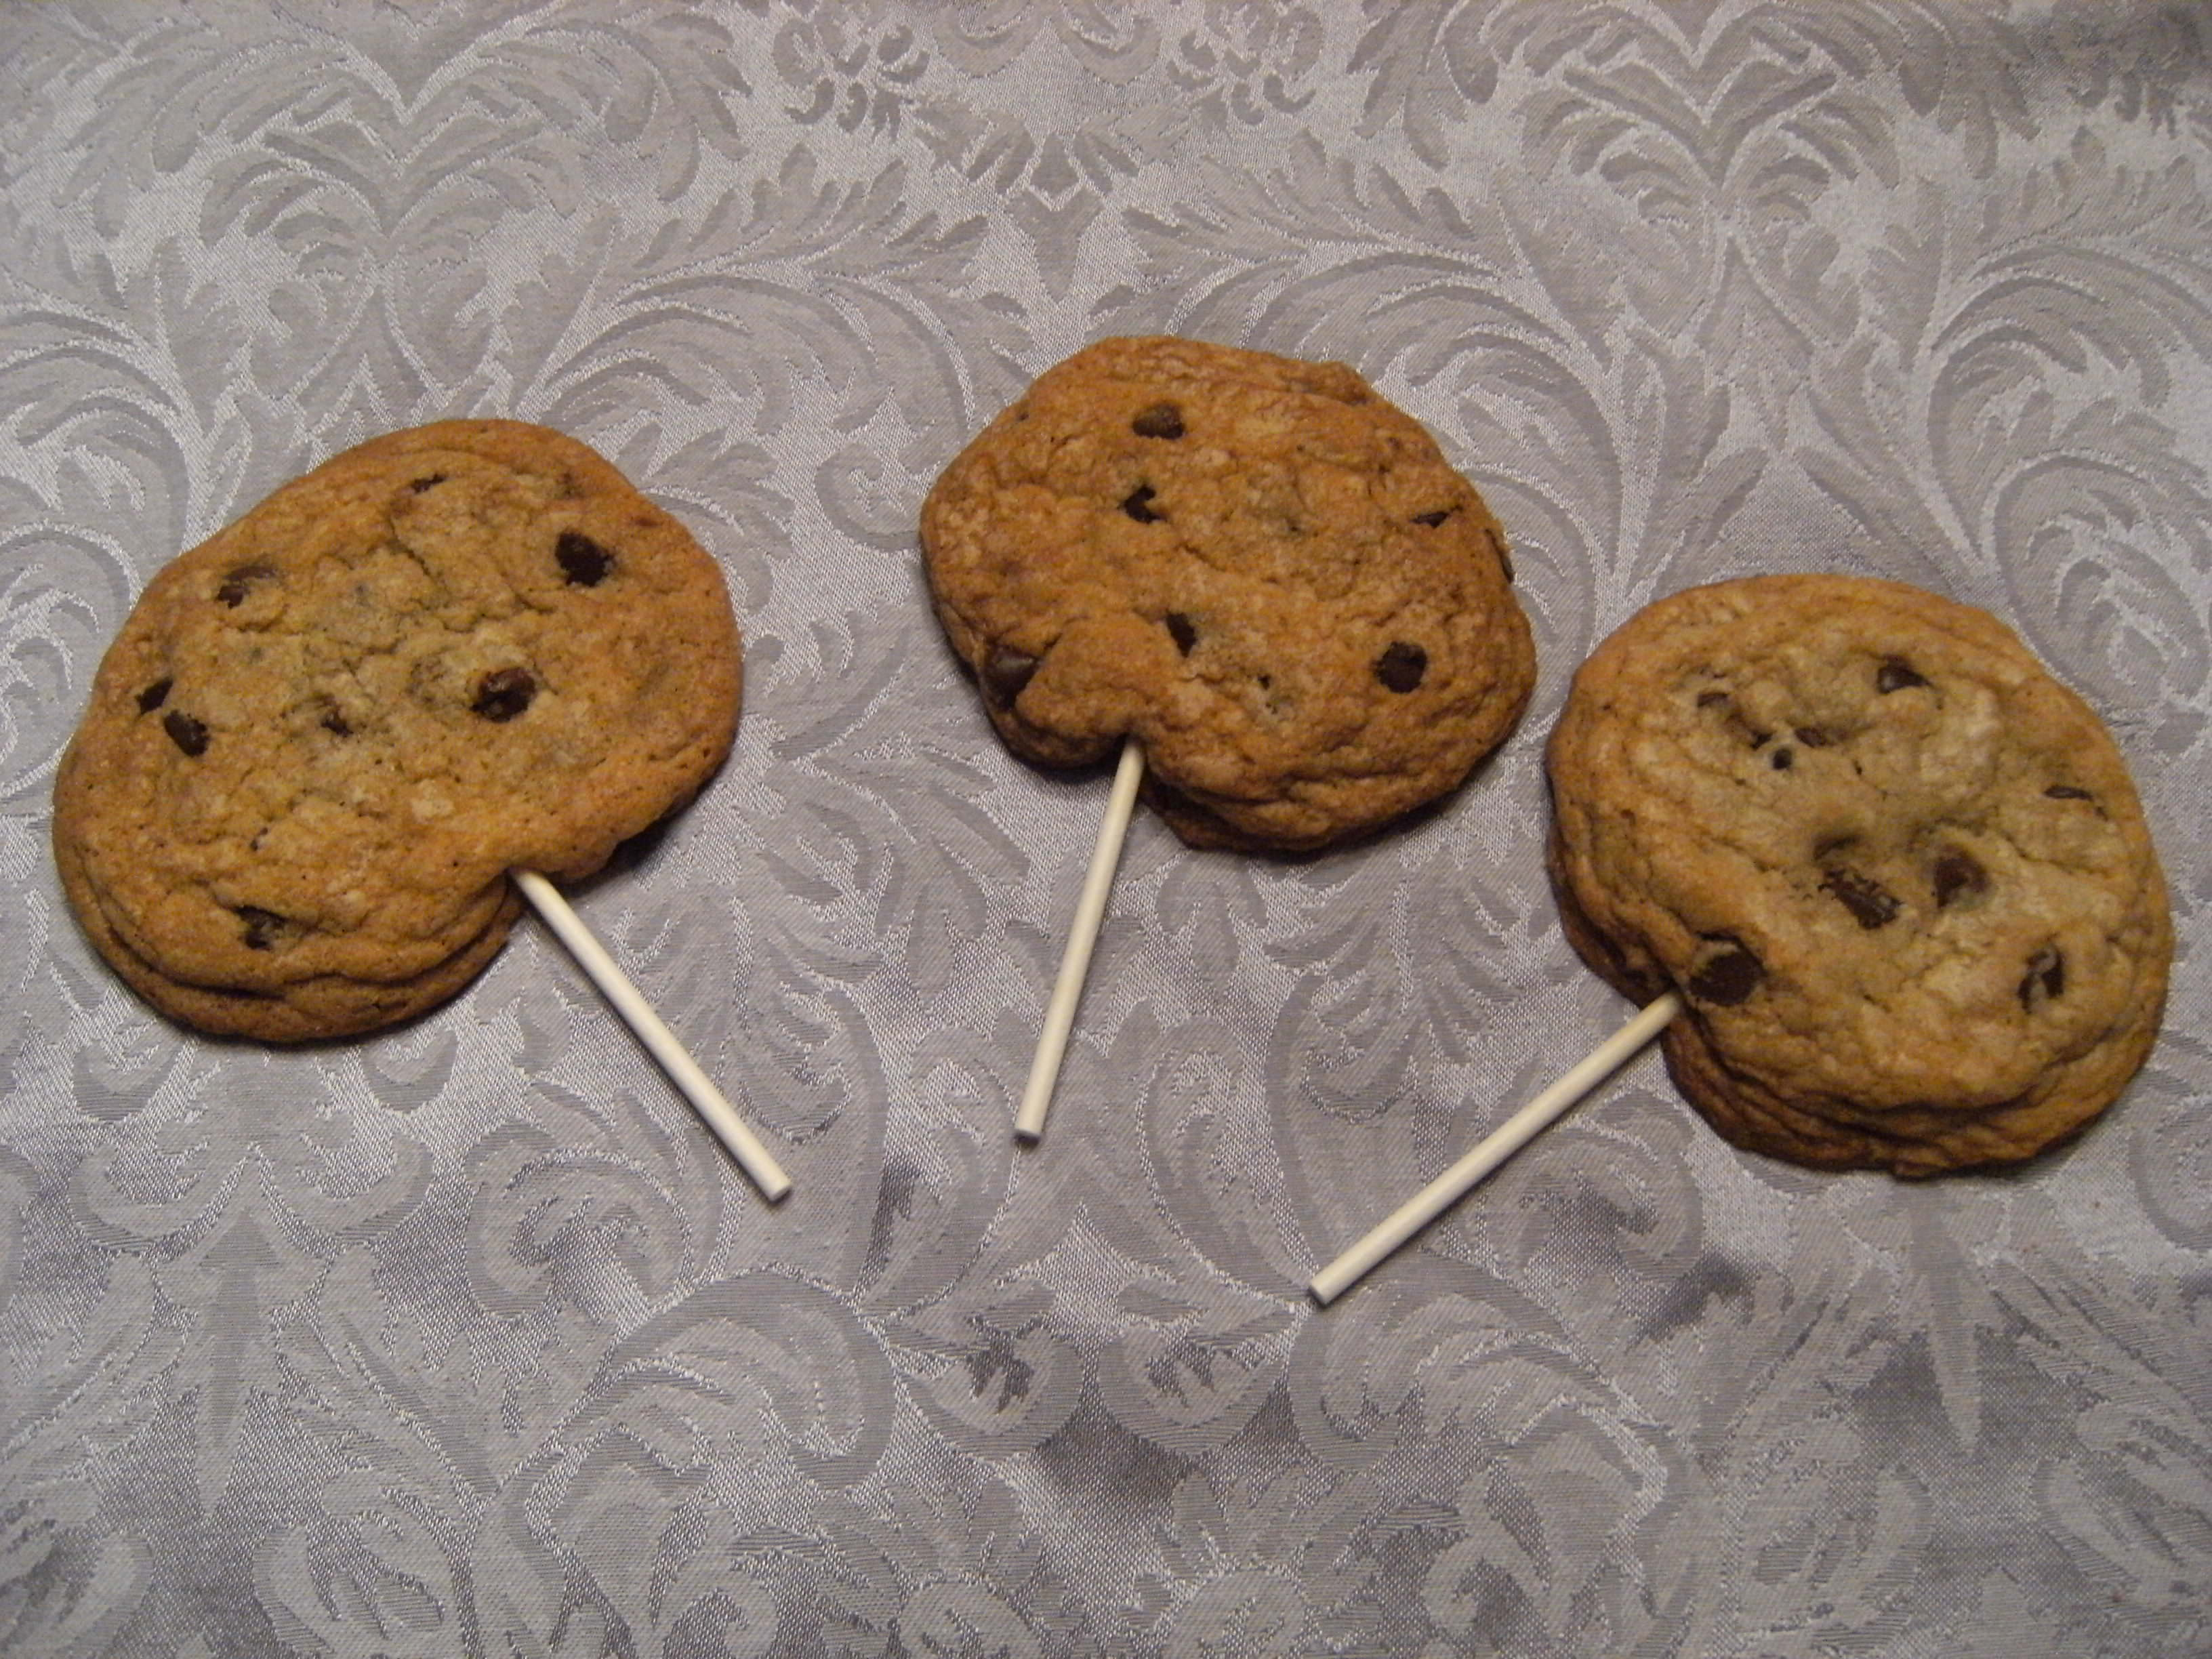 My favorite chocolate chip cookie recipe, turned into chocolate chip cookie pops!